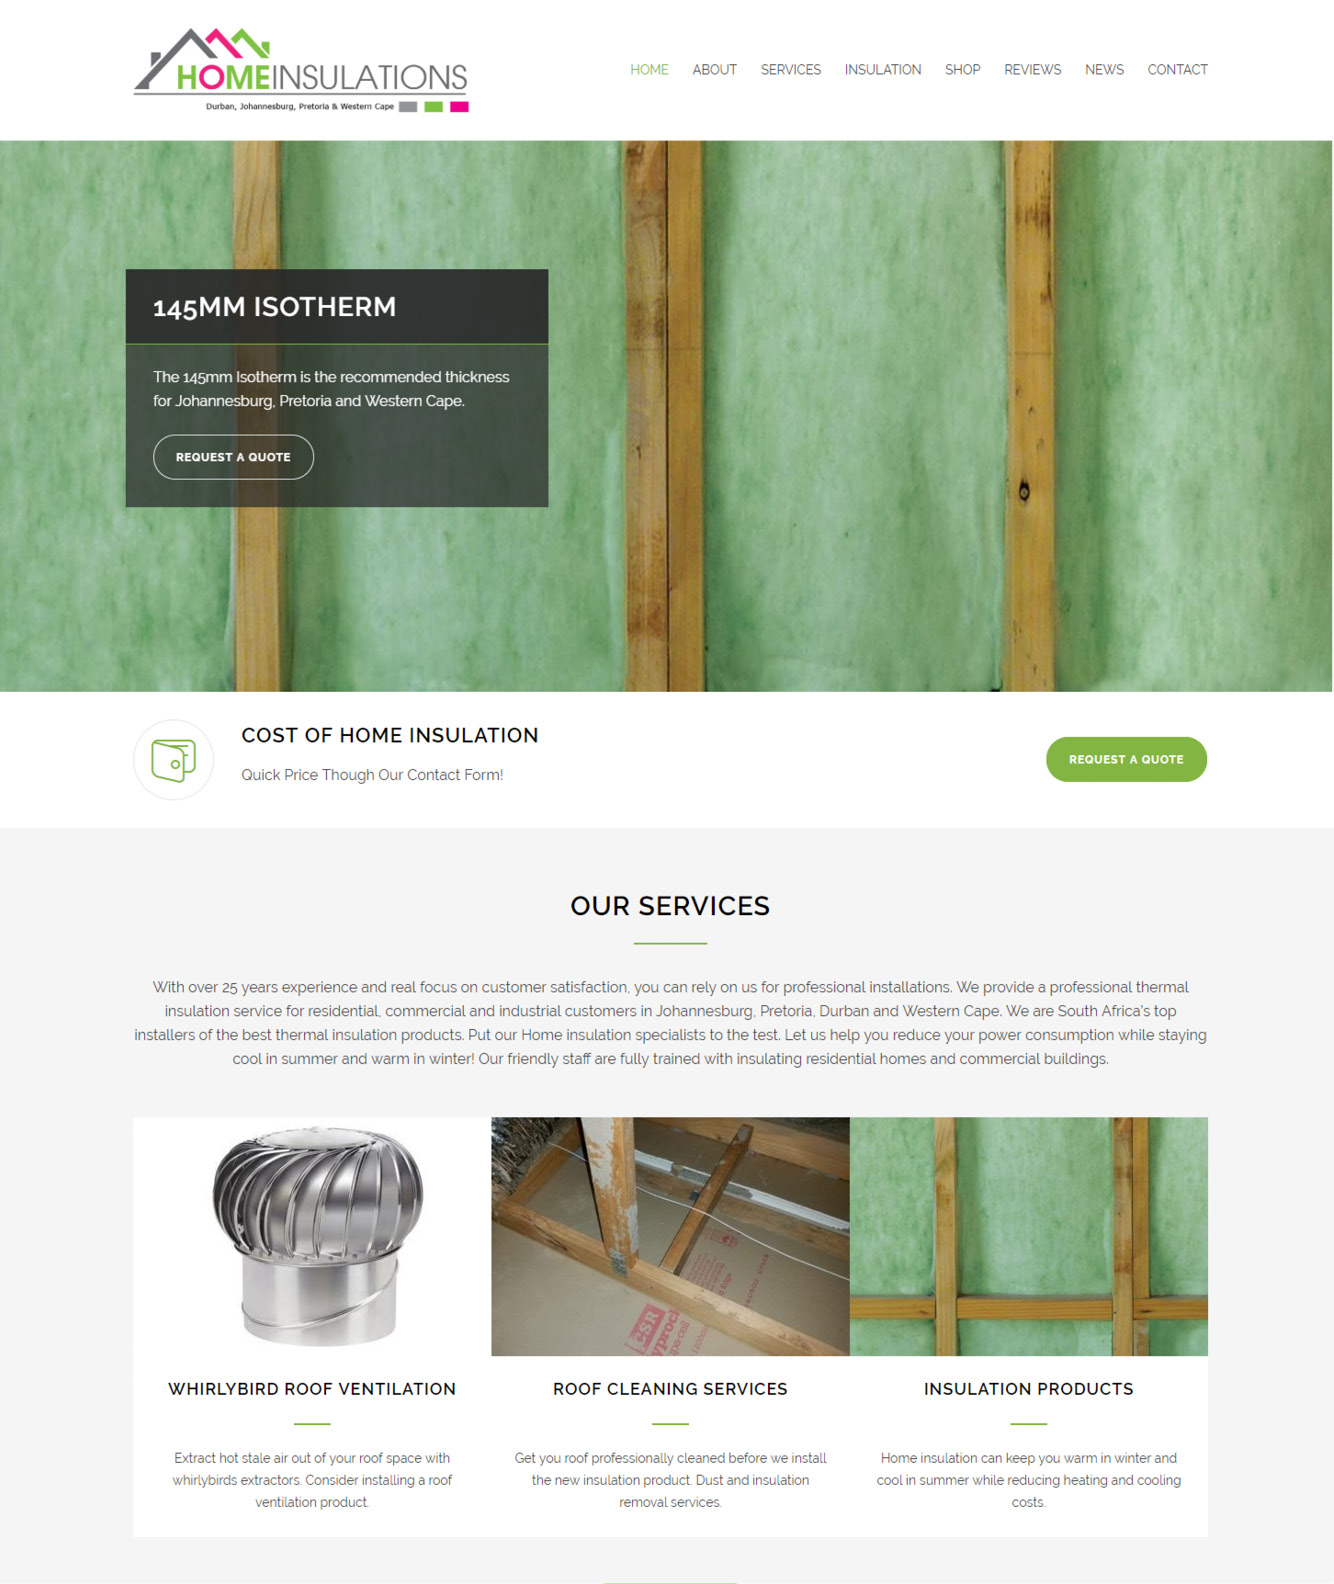 Home Insulationa Website Design